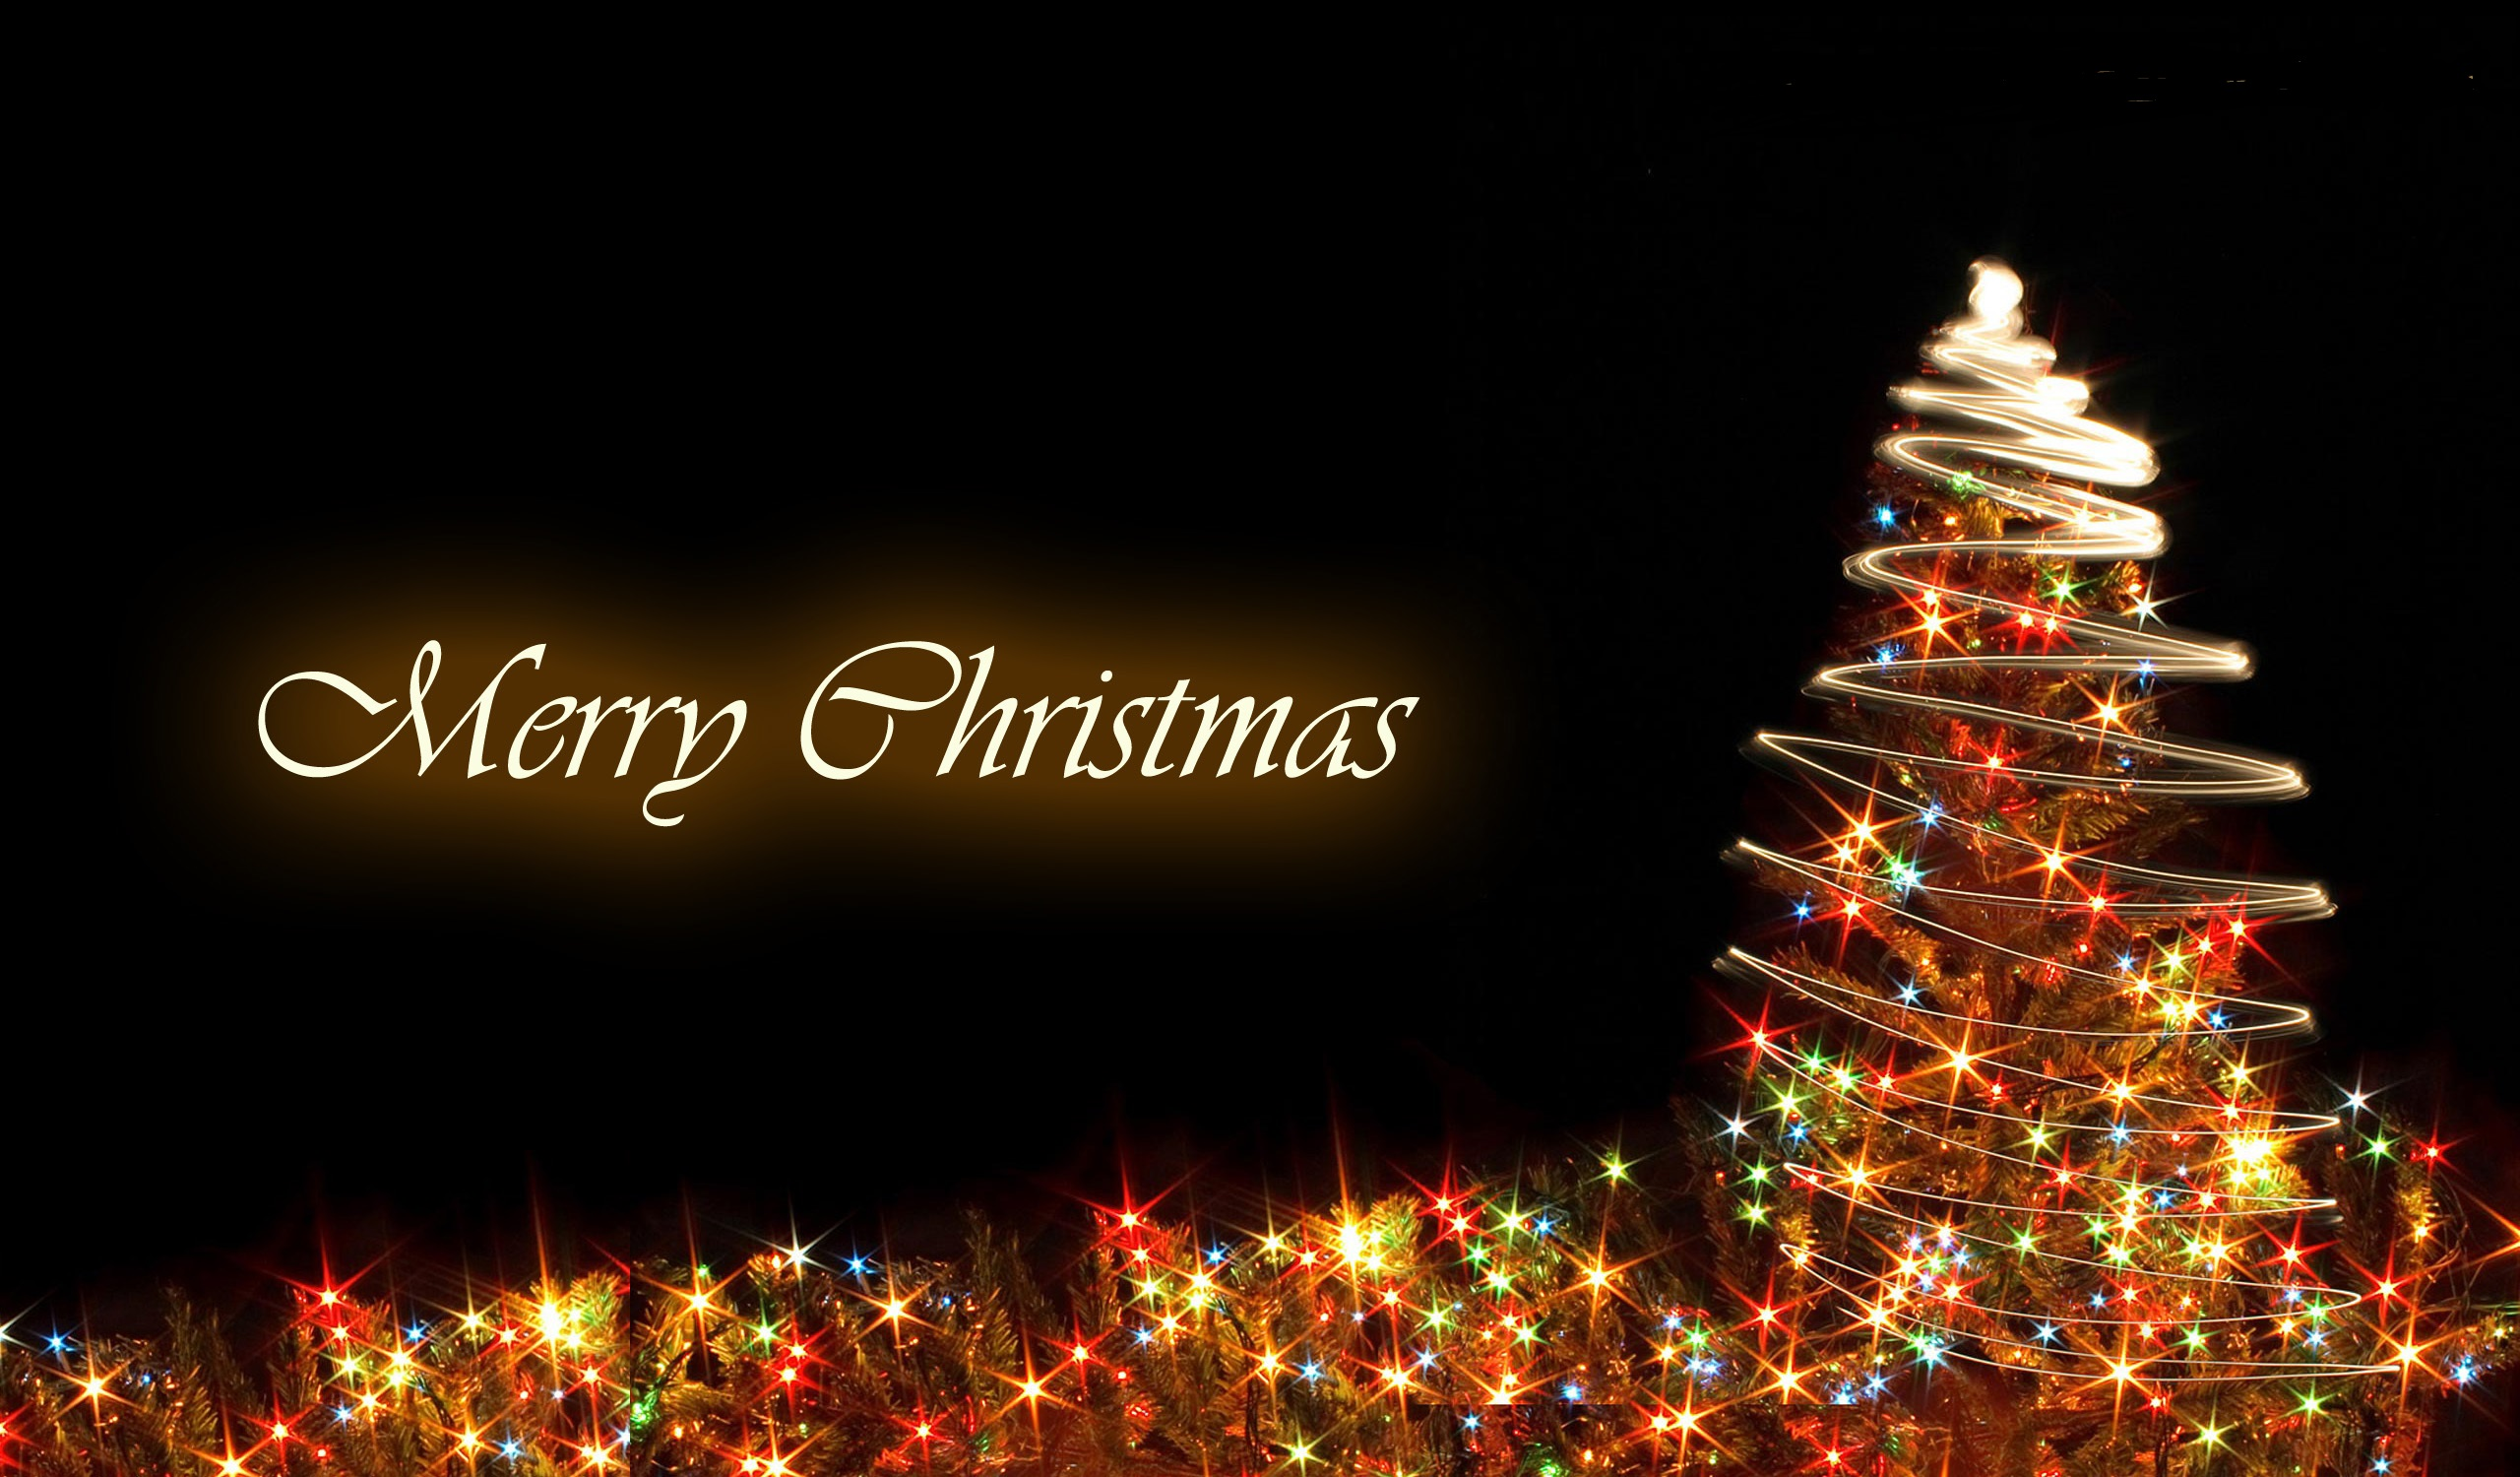 Christmas-Wallpaper-free-hd-wallpapers-for-desktop -